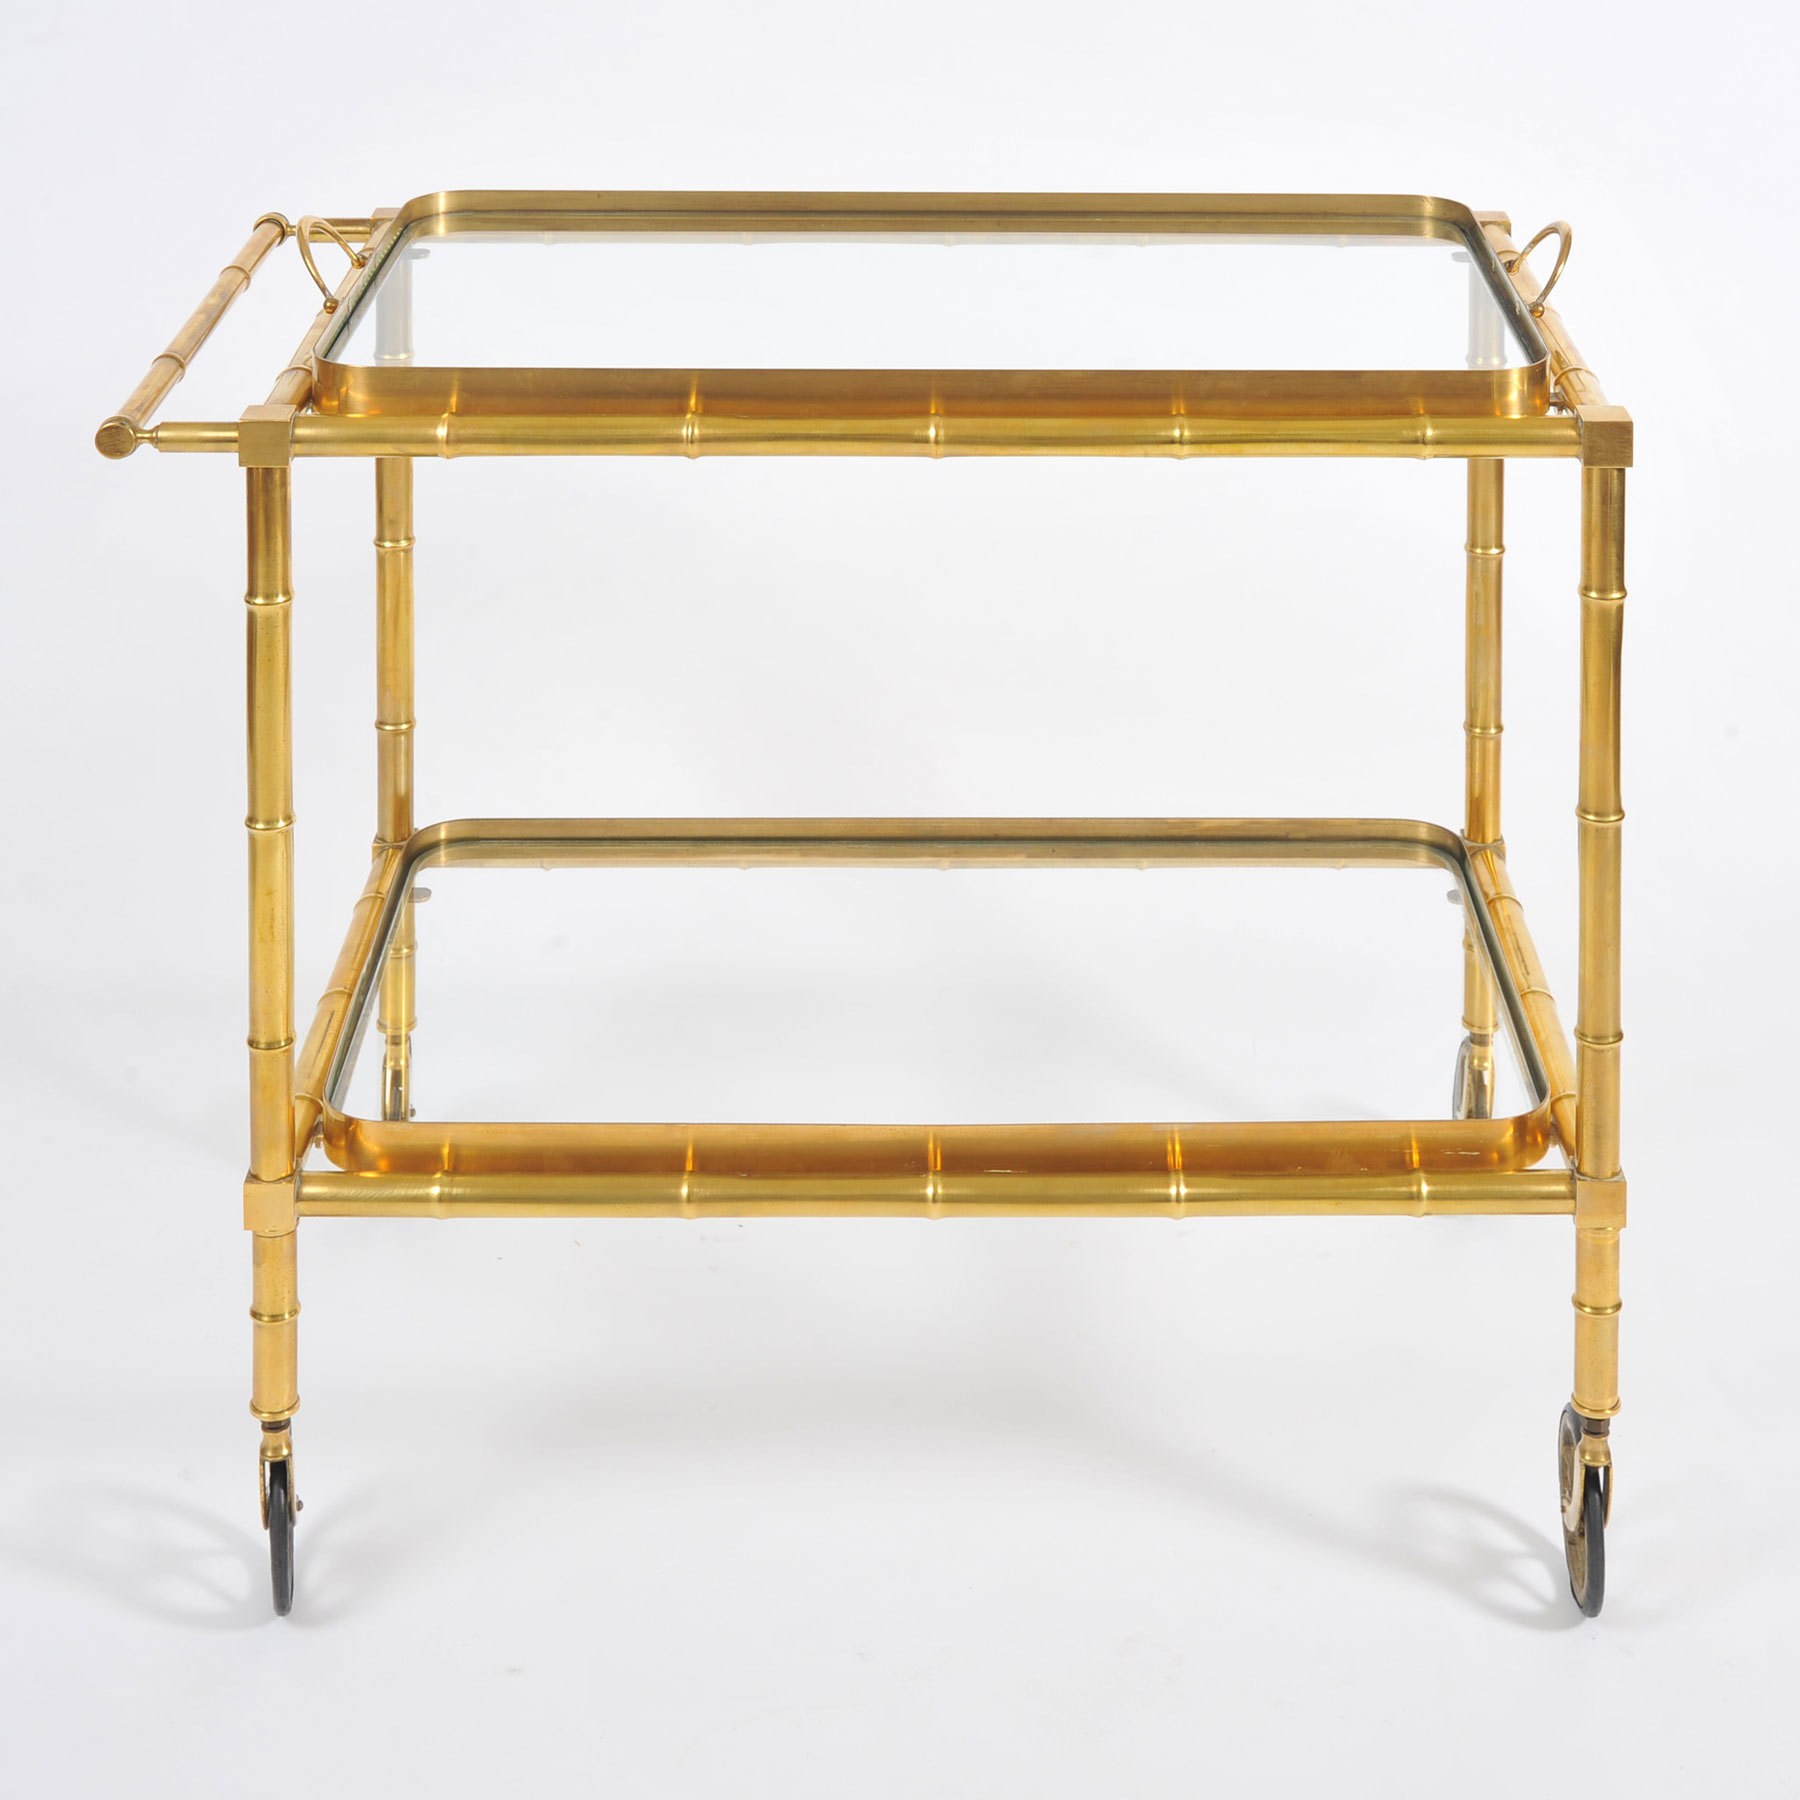 The image for Bamboo Brass Trolley 02 Vw